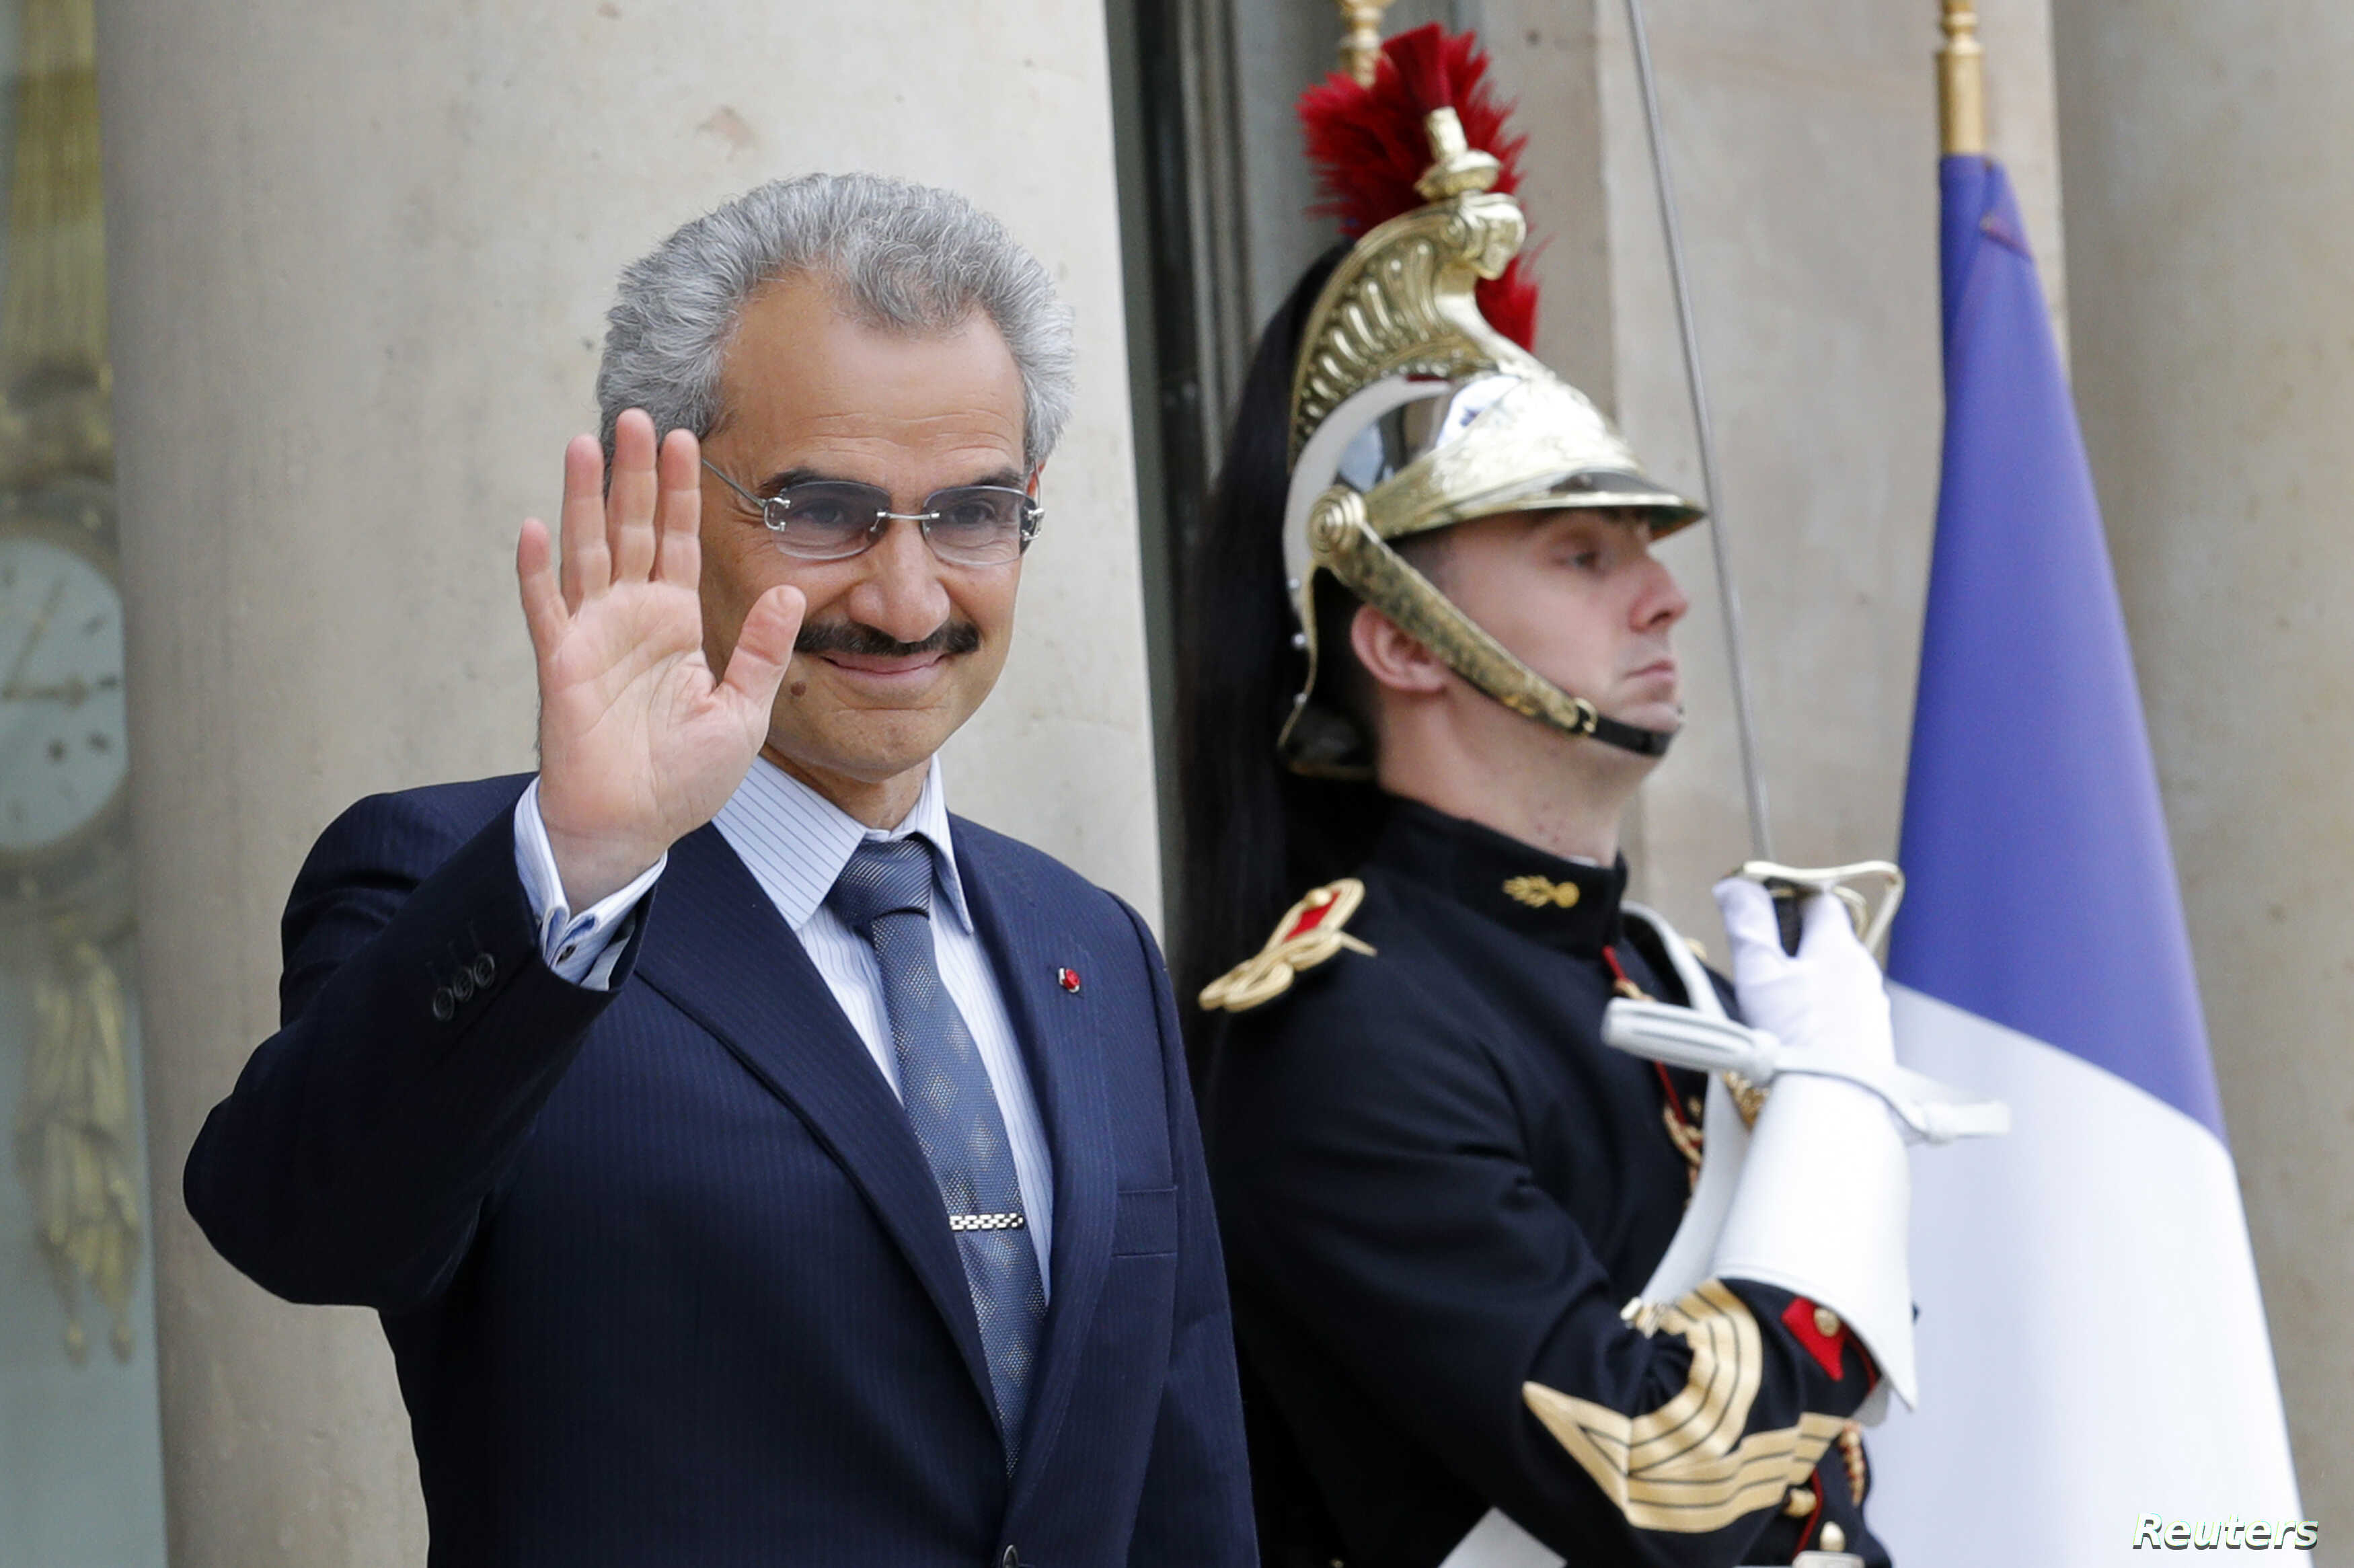 Saudi Arabian Prince Al-Waleed bin Talal arrives at the Elysee palace in Paris, to attend a meeting with the French president, Sept. 8 , 2016.